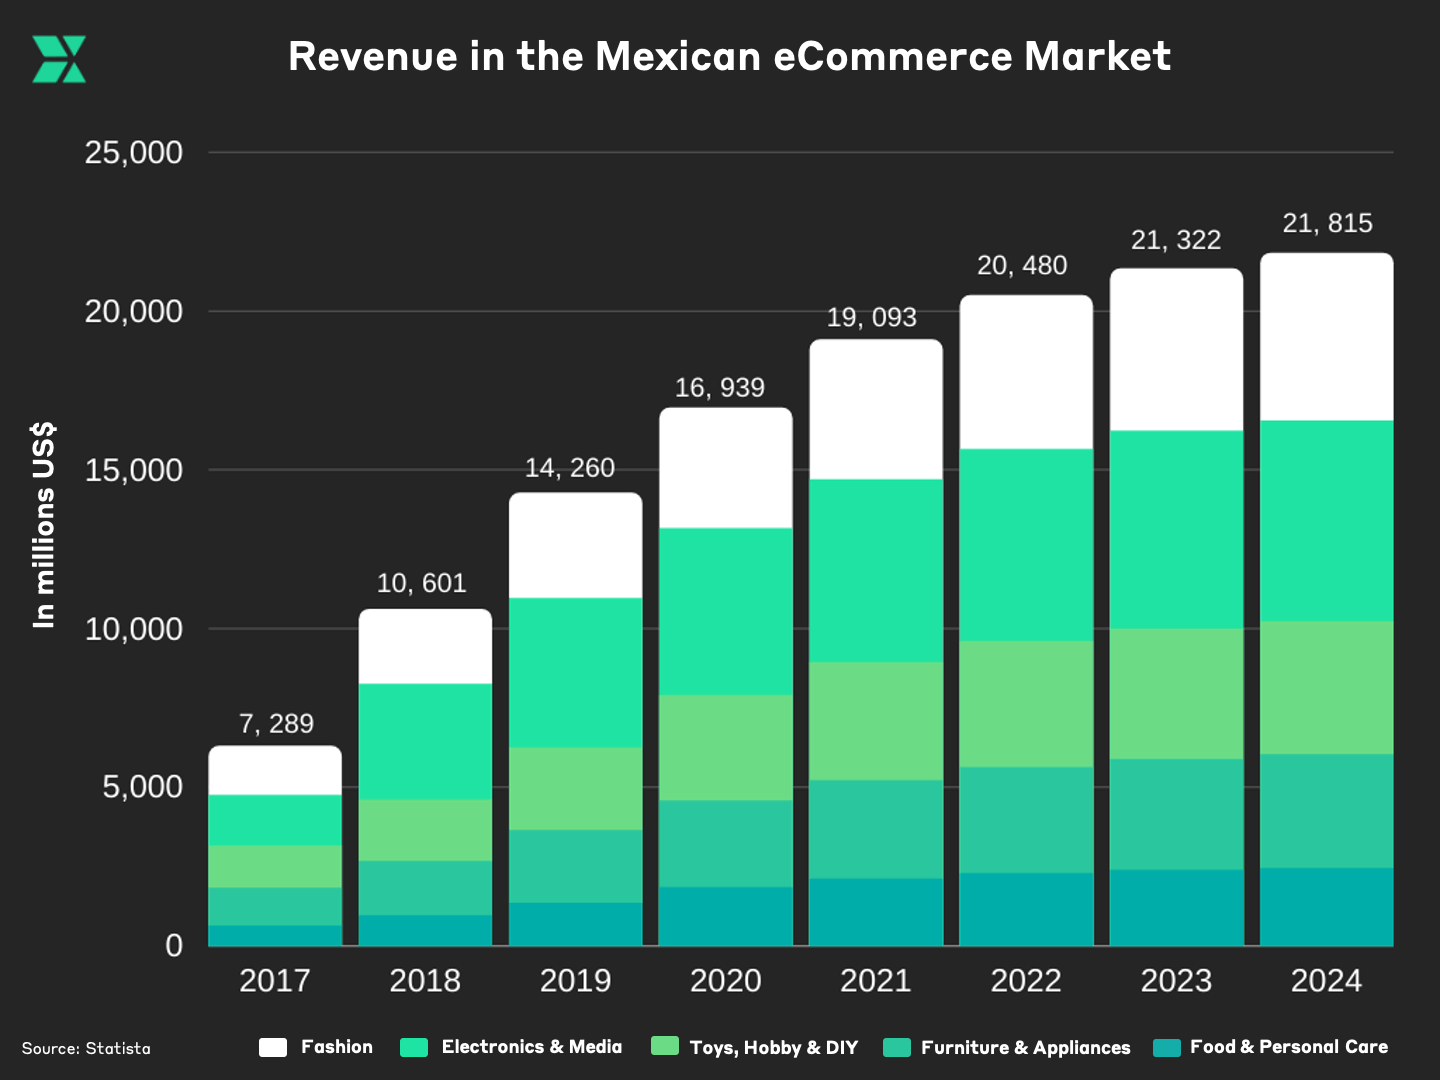 Revenue in Mexican eCommerce market